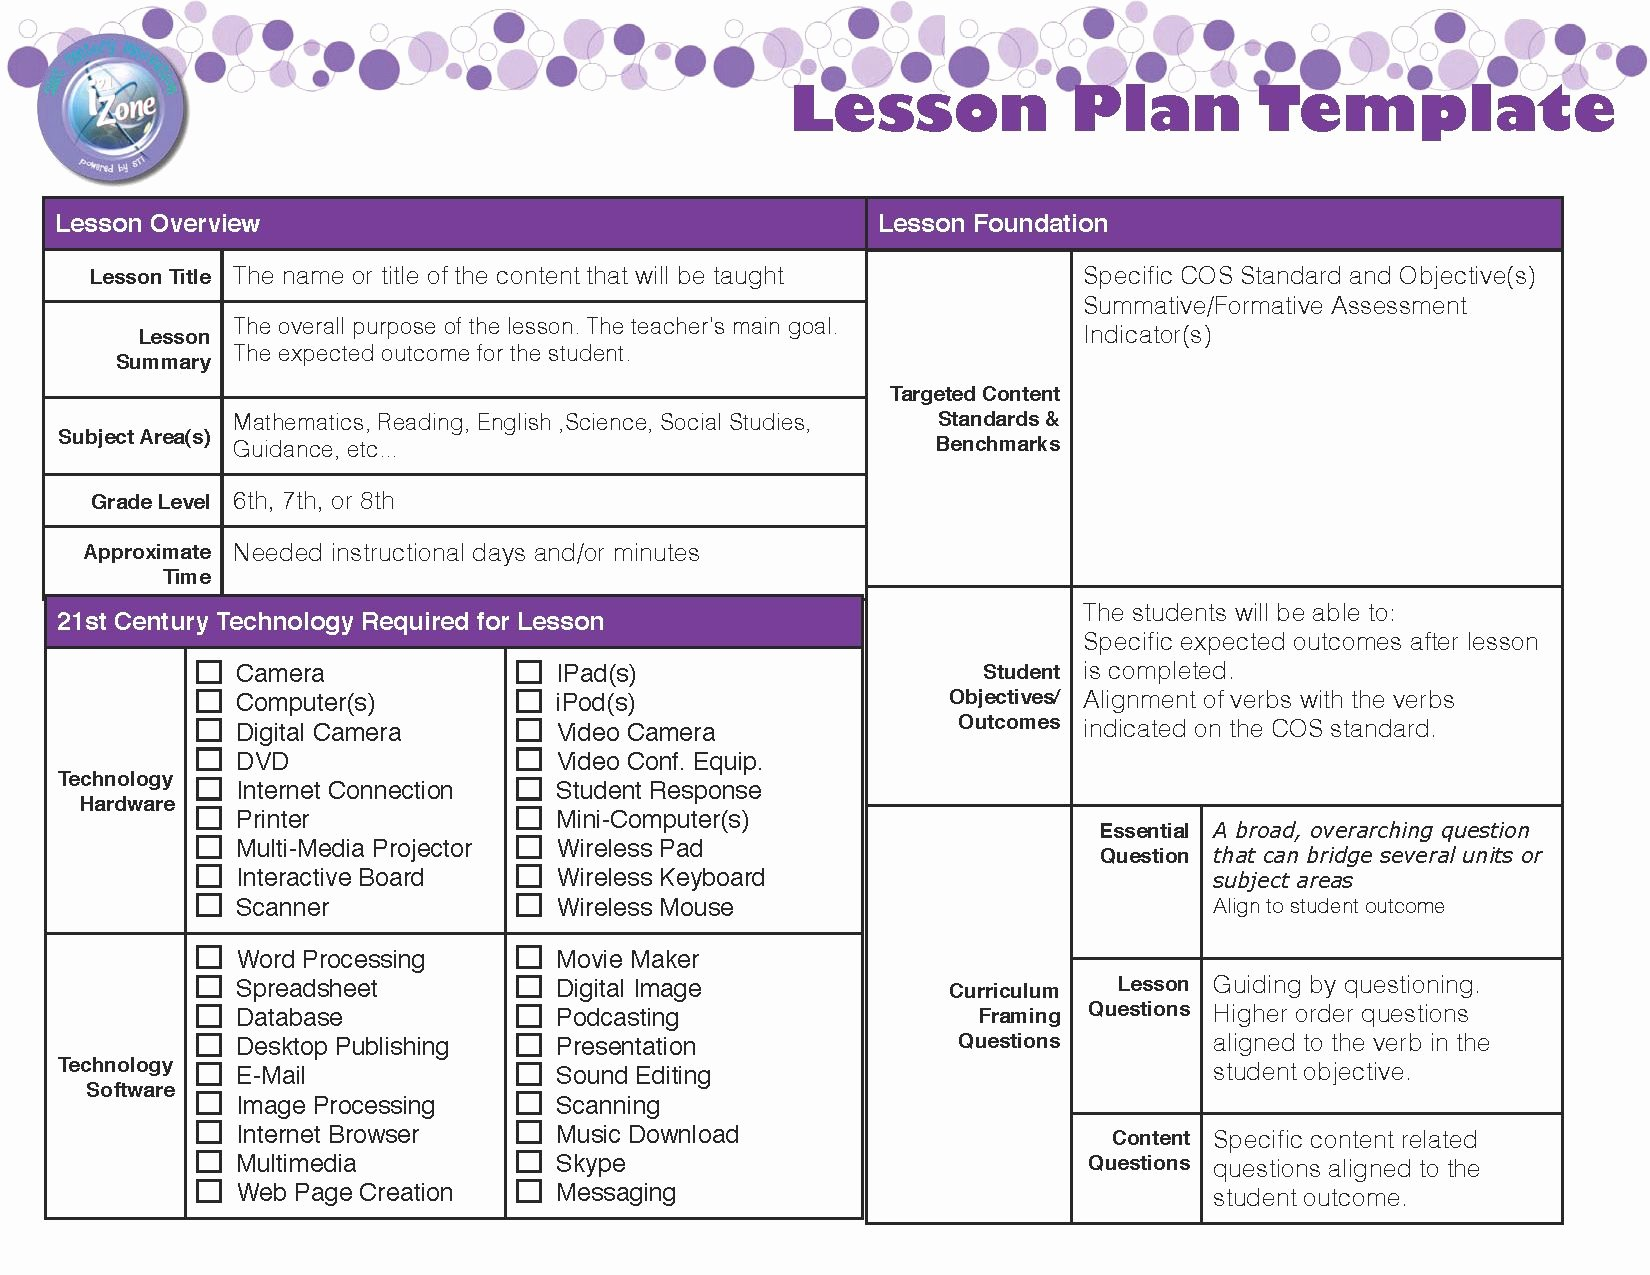 Lesson Plan Template Free Lovely Lesson Plan Template